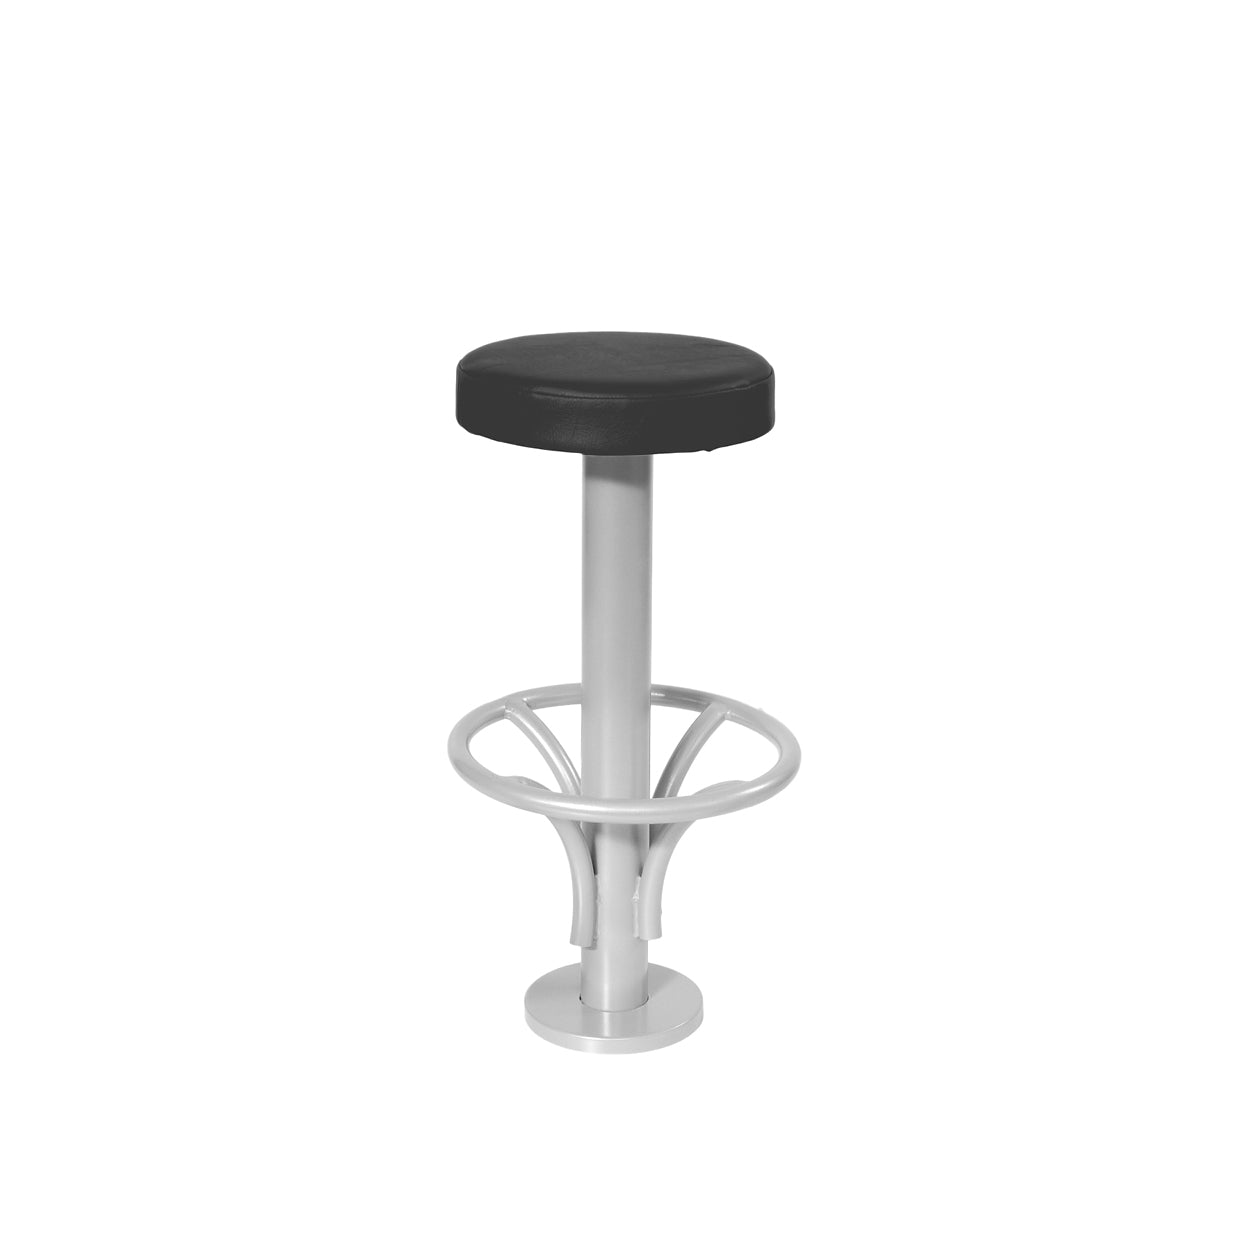 Hedcor Rocket bar stool